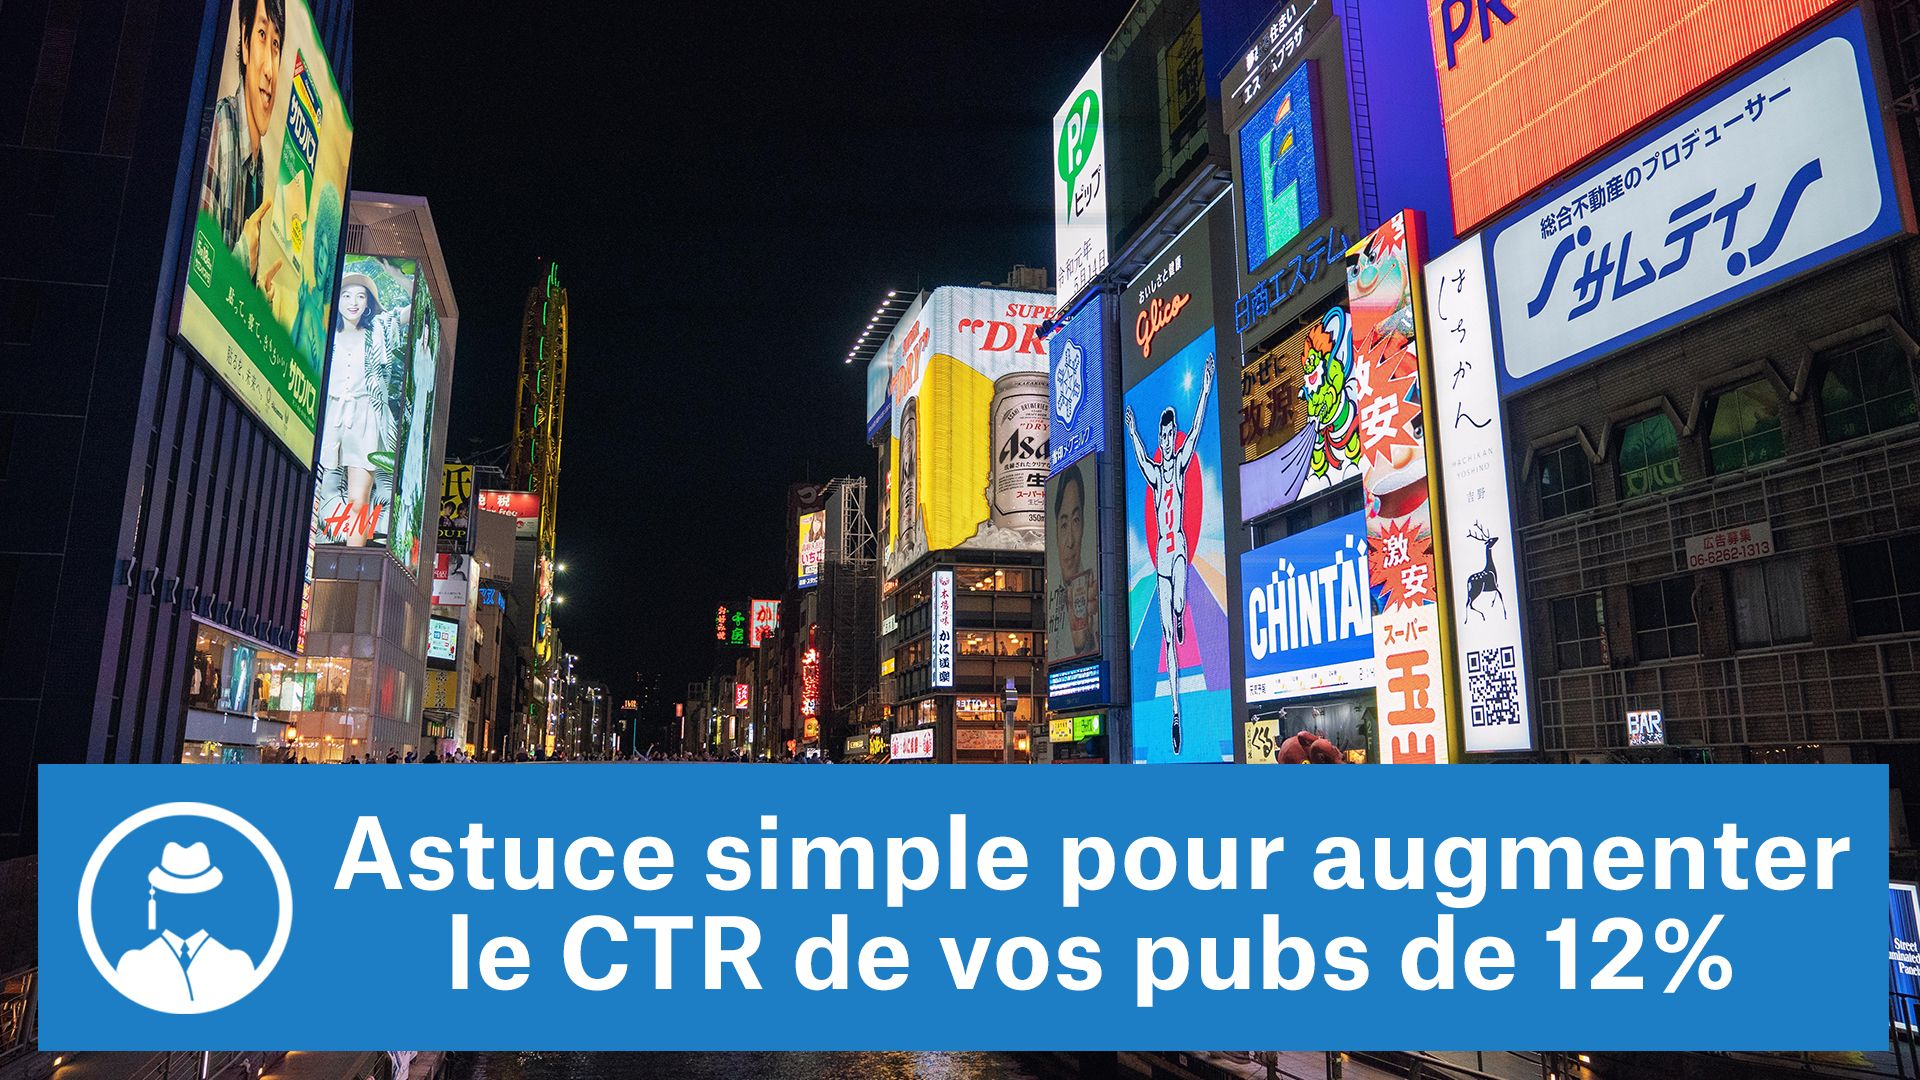 Astuce simple pour augmenter le CTR de vos publicités de 12% #GrowthHacking #WebMarketing #FormationGrowthHacking #CentreDeFormationFrance #TunnelAARRR #AARRR #SocialMedia #CommunityManagement #SEO #MarketingDigital #SiteWeb